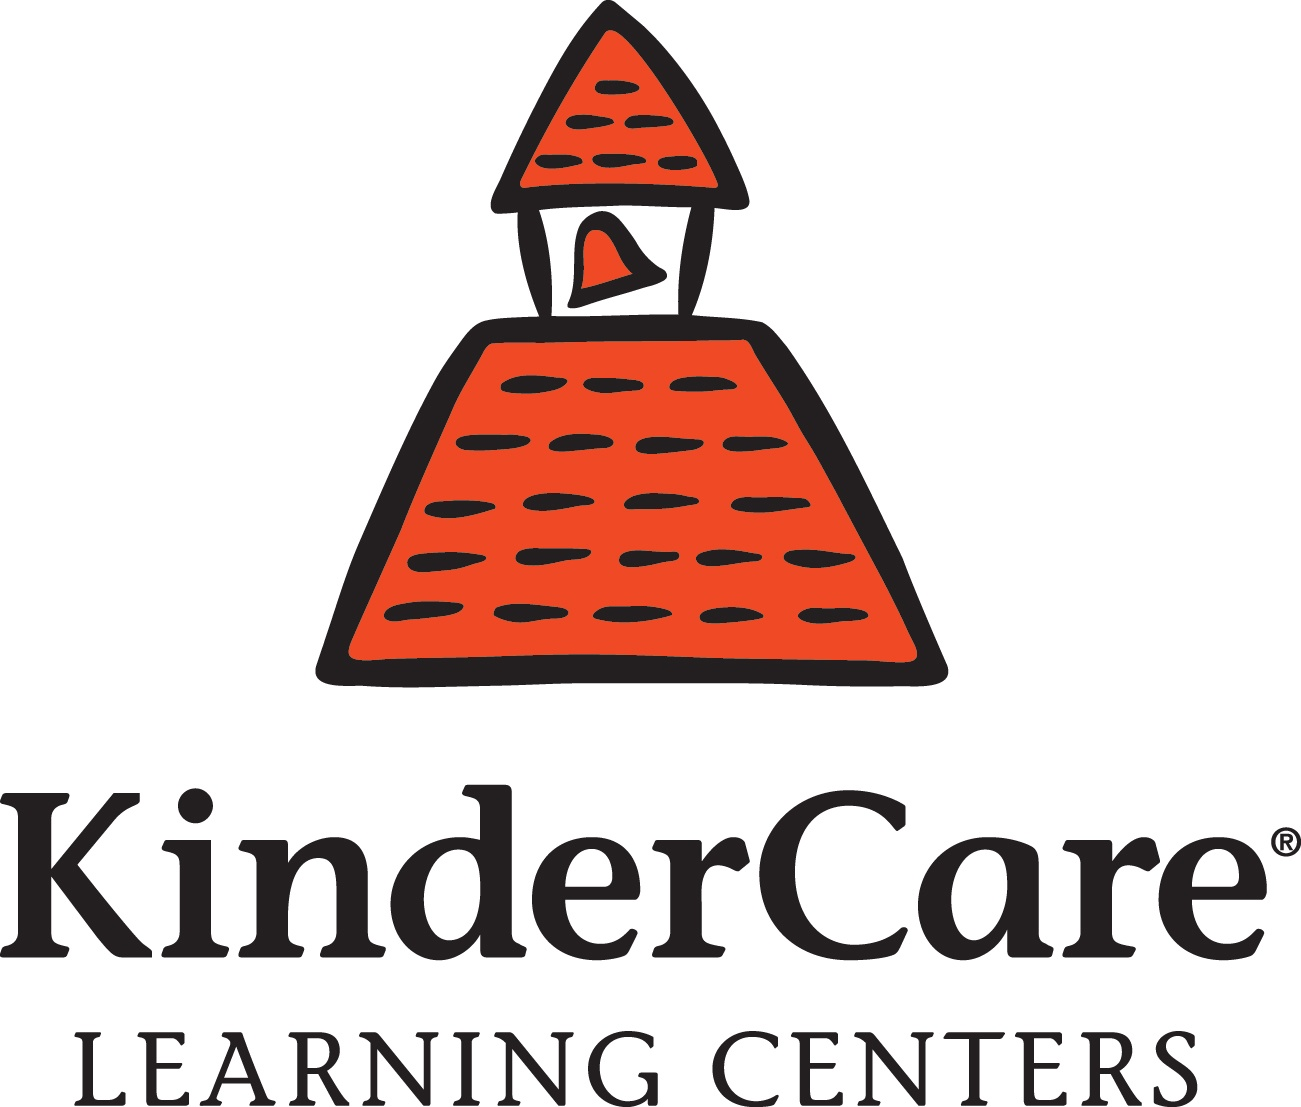 Kinder Care Employee Puts 4-Year Old Girl Out In 3-Degree Temperature Without A Coat For Screaming